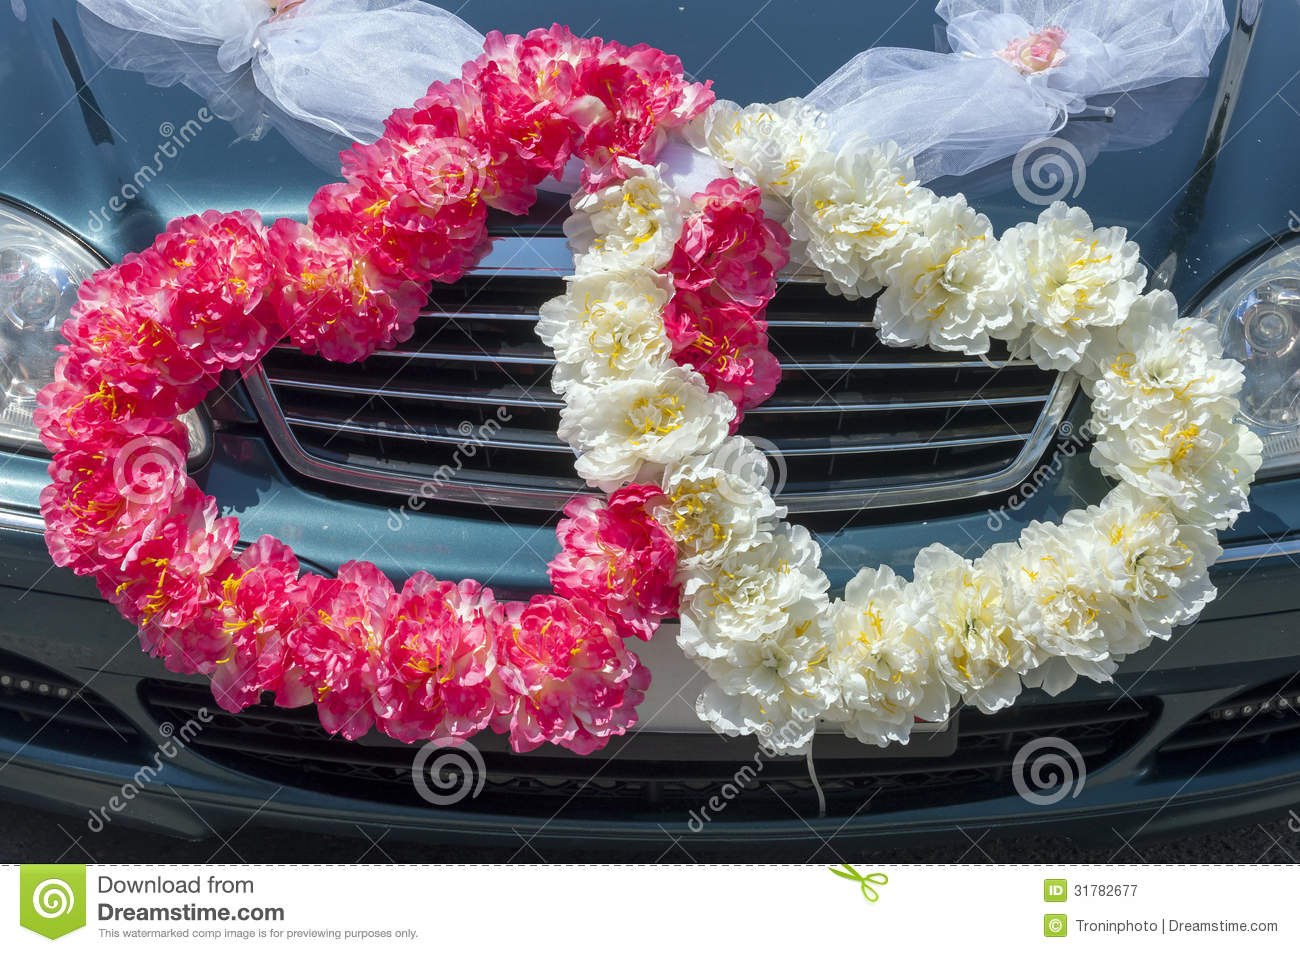 Wedding car decoration in the form of hearts stock image image of wedding car decoration in the form of hearts junglespirit Choice Image